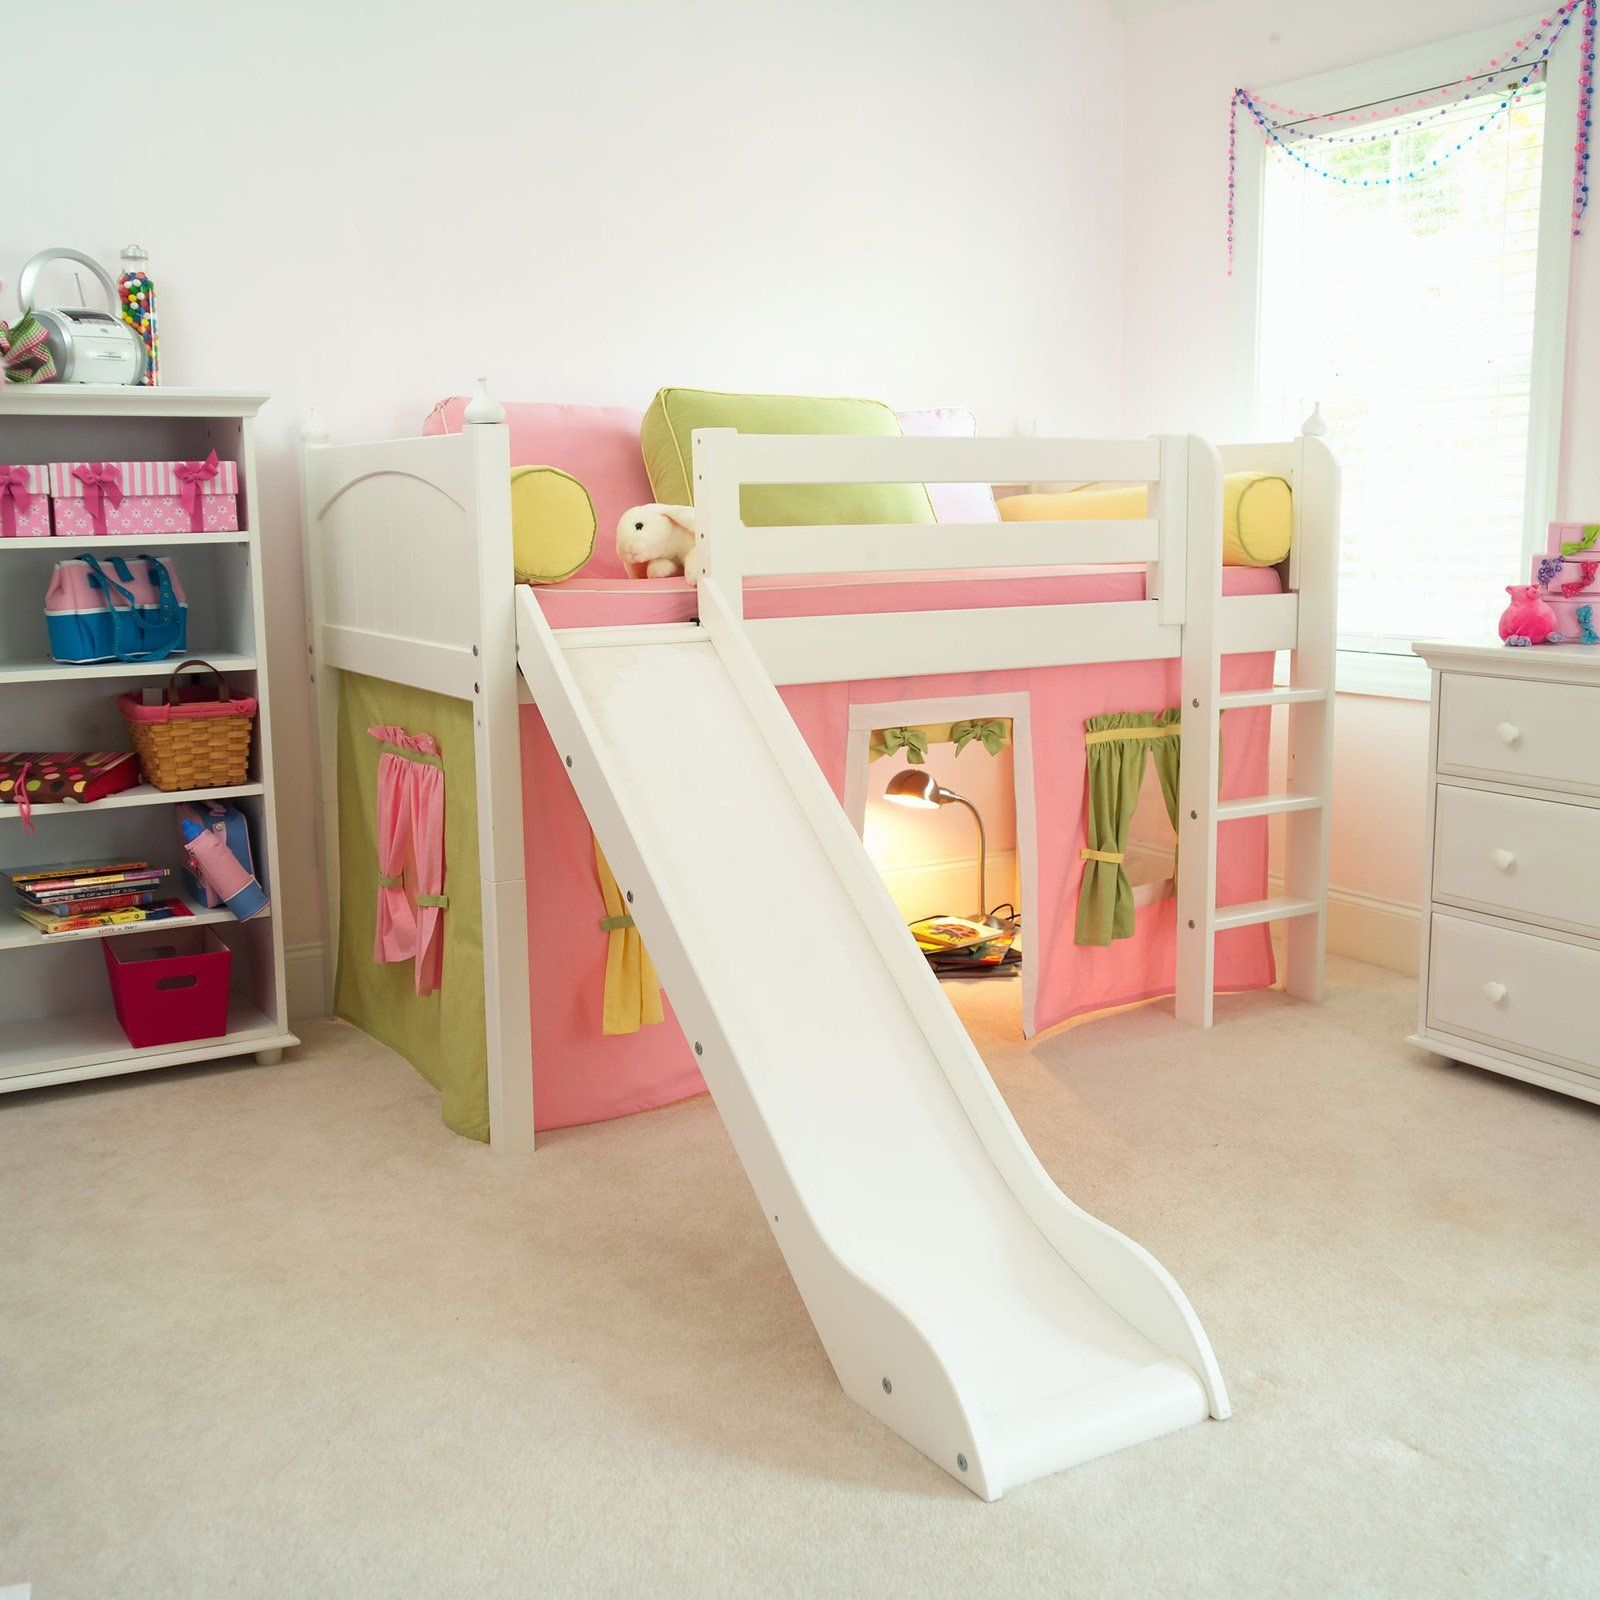 Bunk bed with slide ikea & Bunk Bed With Slide And Tent - Foter